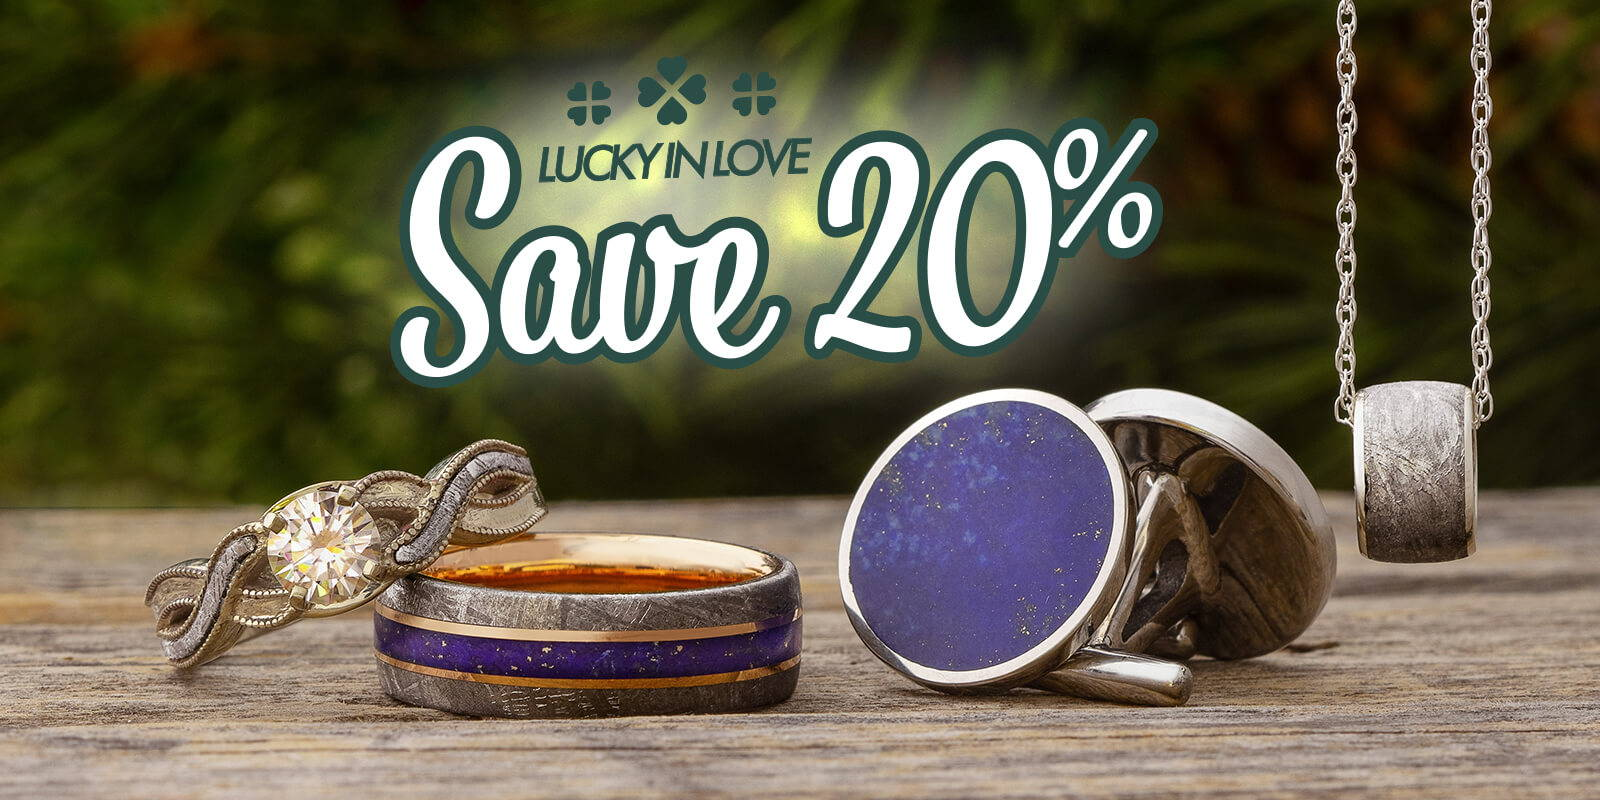 Lucky in Love Sale